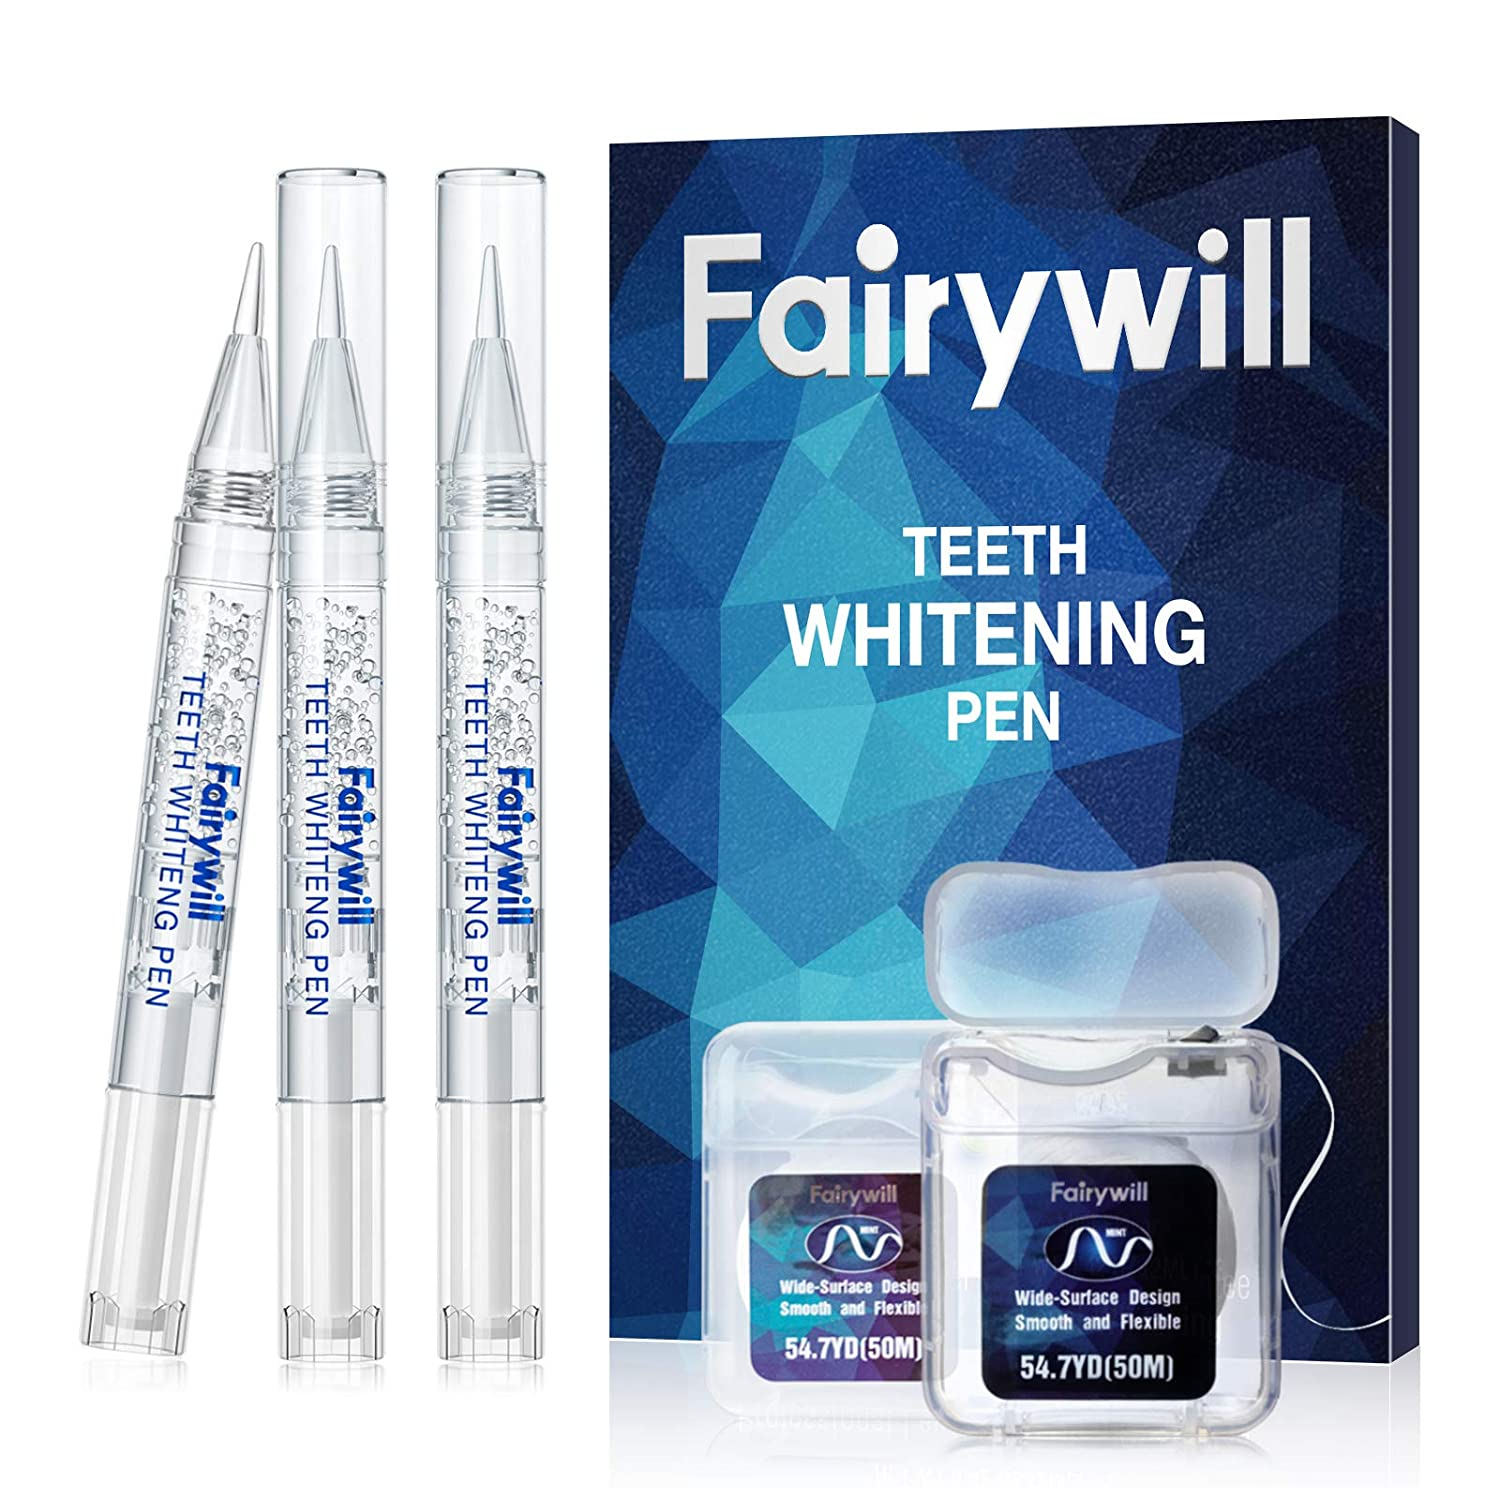 Fairywill Teeth Whitening Pen, 3 Pcs, 35 Percent Carbamide Peroxide, Teeth Whitener Pen for Sensitive Teeth, Enamel Safe Teeth Whitening Gel Pen, Pro White Teeth Pen Remove Tough Stains